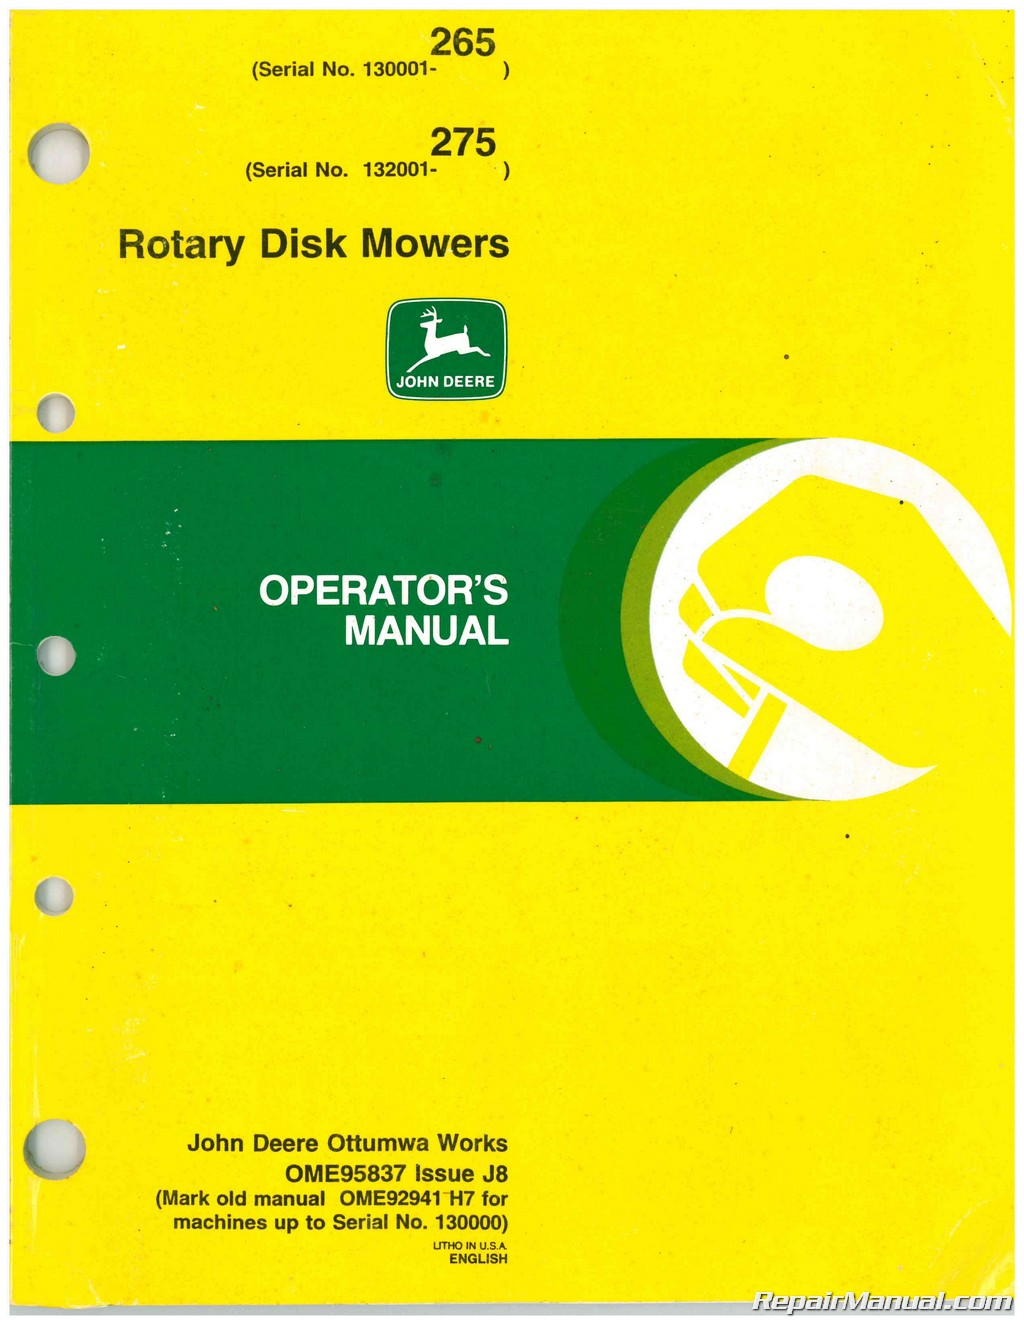 John Deere 265 275 Rotary Disk Mowers Operators Manual on john deere s4, john deere s80, john deere riding mower manuals, john deere riding lawn mower accessories, john deere mower w 38 l, john deere s82, john deere 210, john deere s40, john deere s45, john deere gx95, john deere s-92 manual, john deere mower deck parts, john deere s-92 deck, john deere d140, john deere s10,